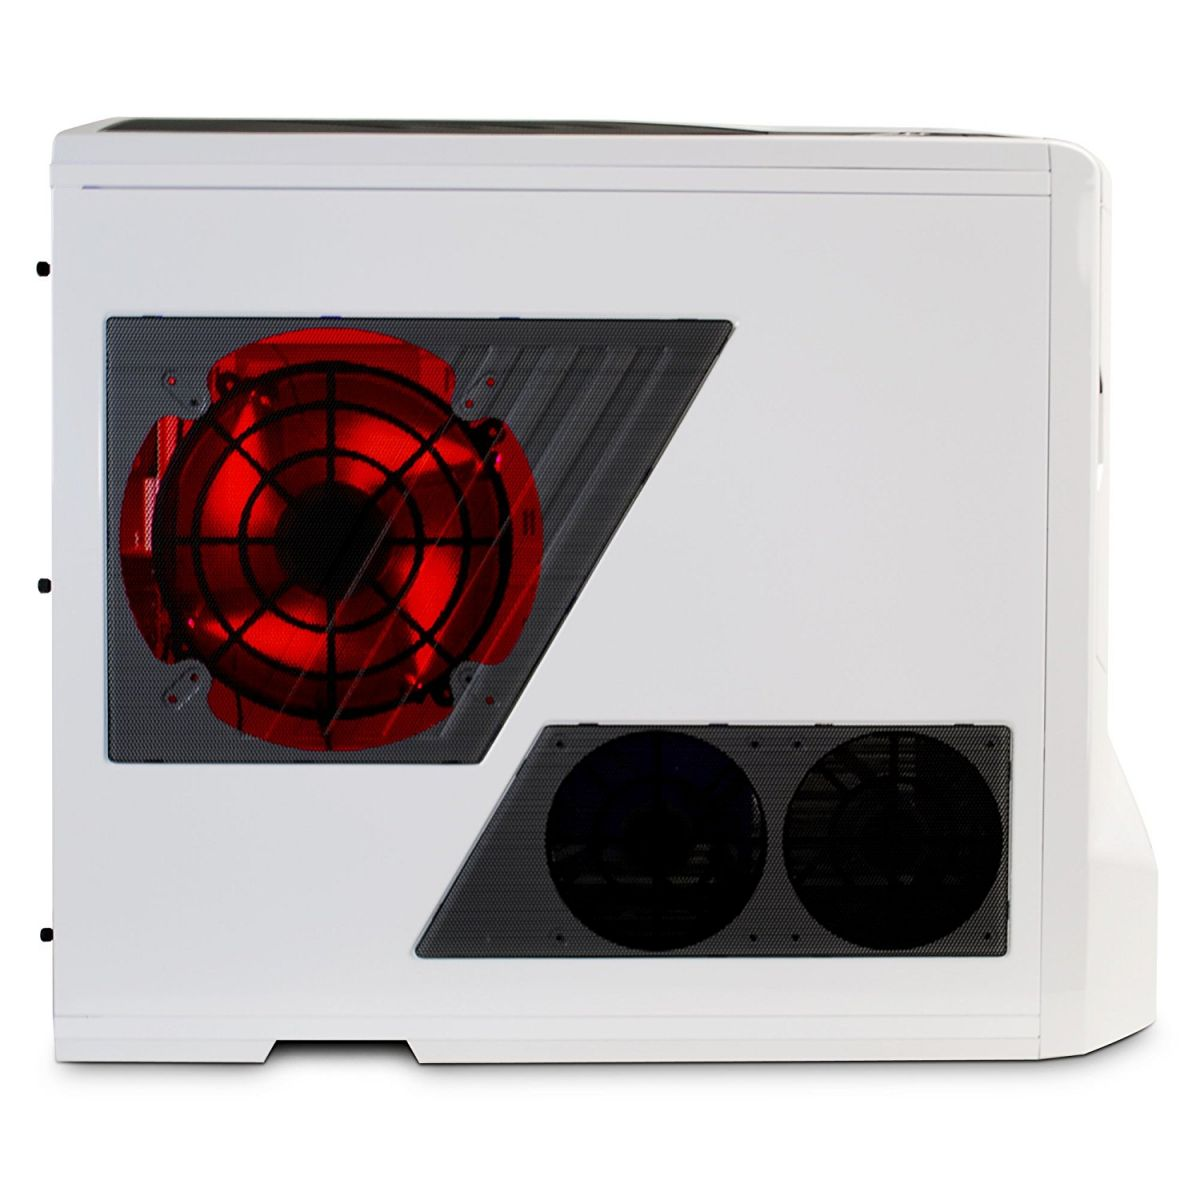 Cooler para Gabinete 200mm LED Vermelho (Switch ON/OFF) FS-200RB-RLED - NZXT